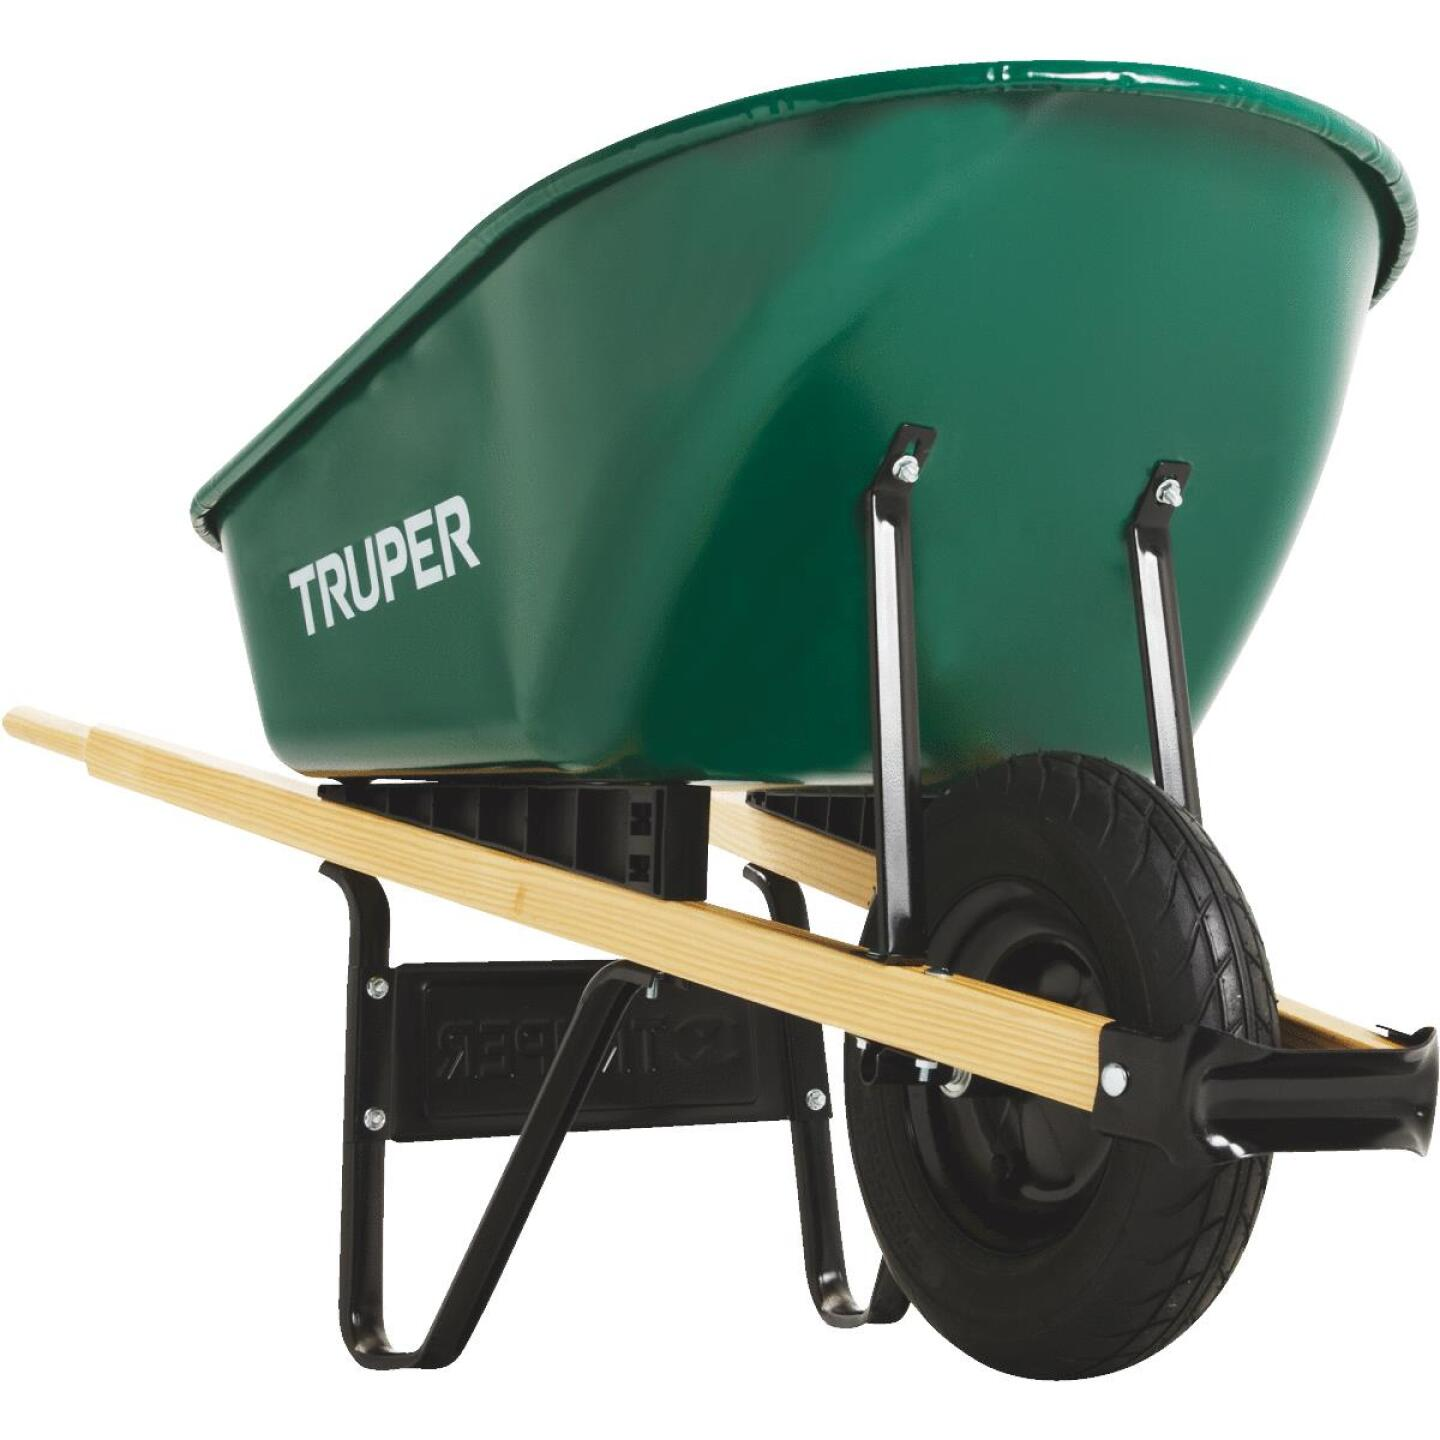 Truper 6 Cu. Ft. Steel Wheelbarrow Image 5